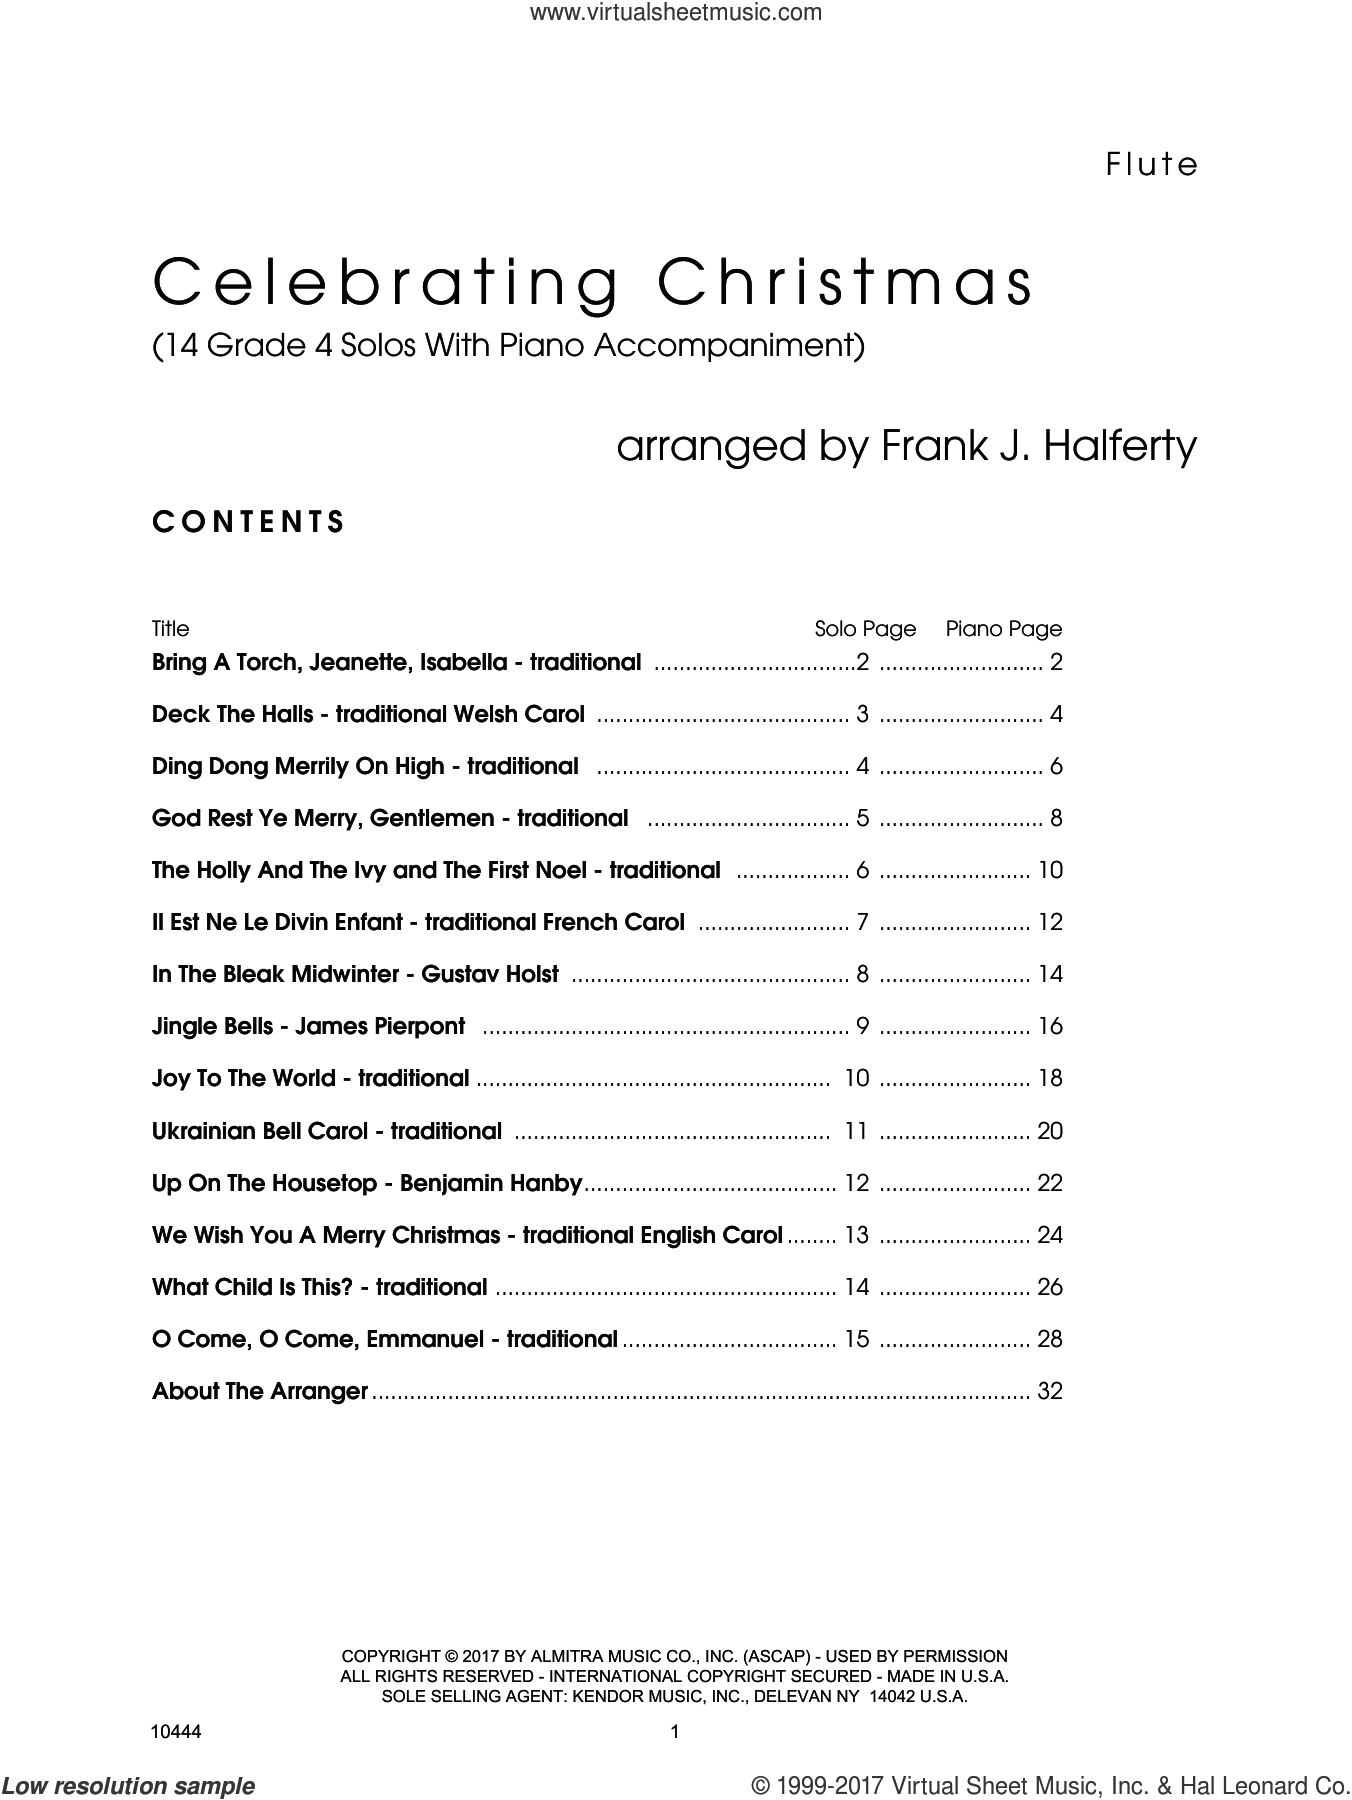 Celebrating Christmas (14 Grade 4 Solos With Piano Accompaniment) (complete set of parts) sheet music for flute and piano by Frank J. Halferty, intermediate skill level